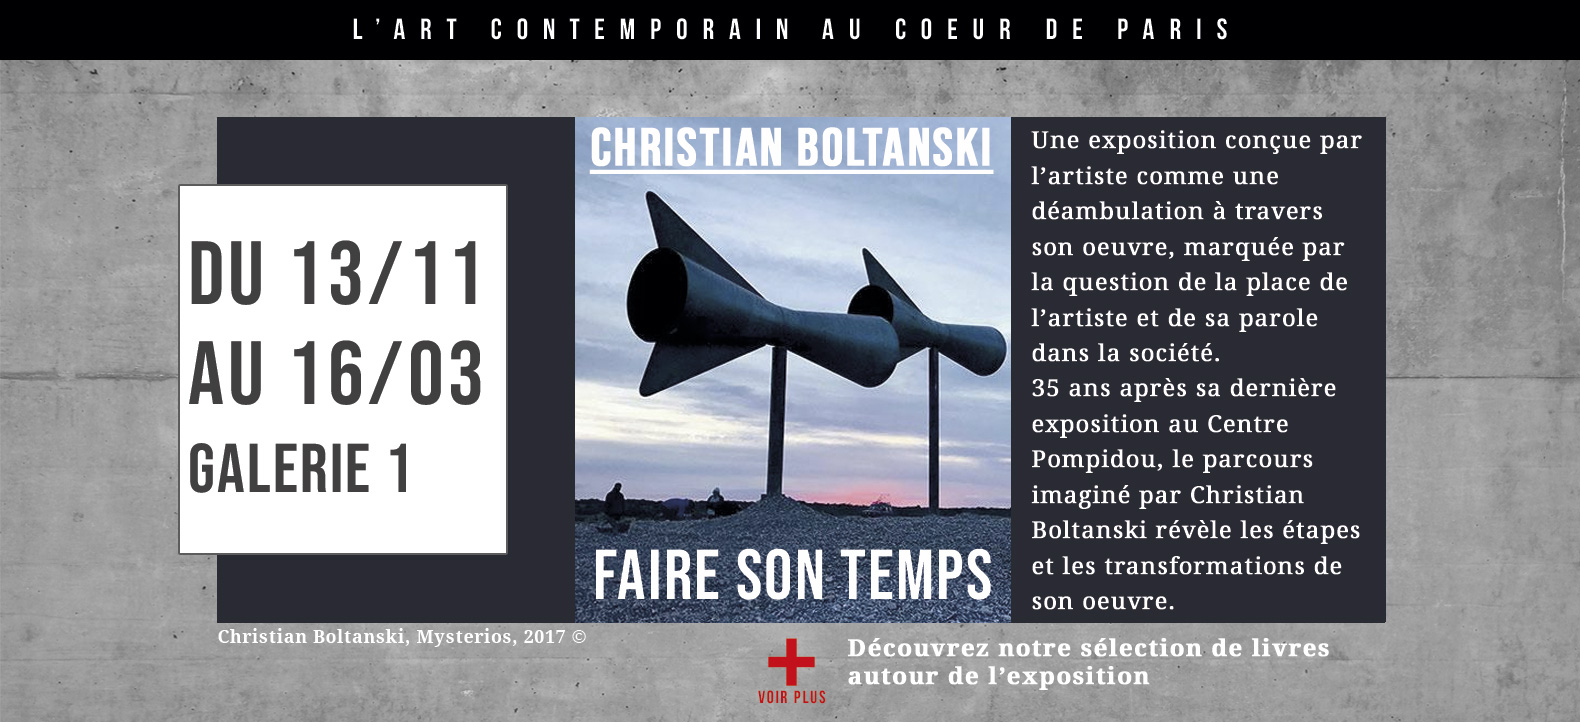 Christian Boltanski, Faire son temps